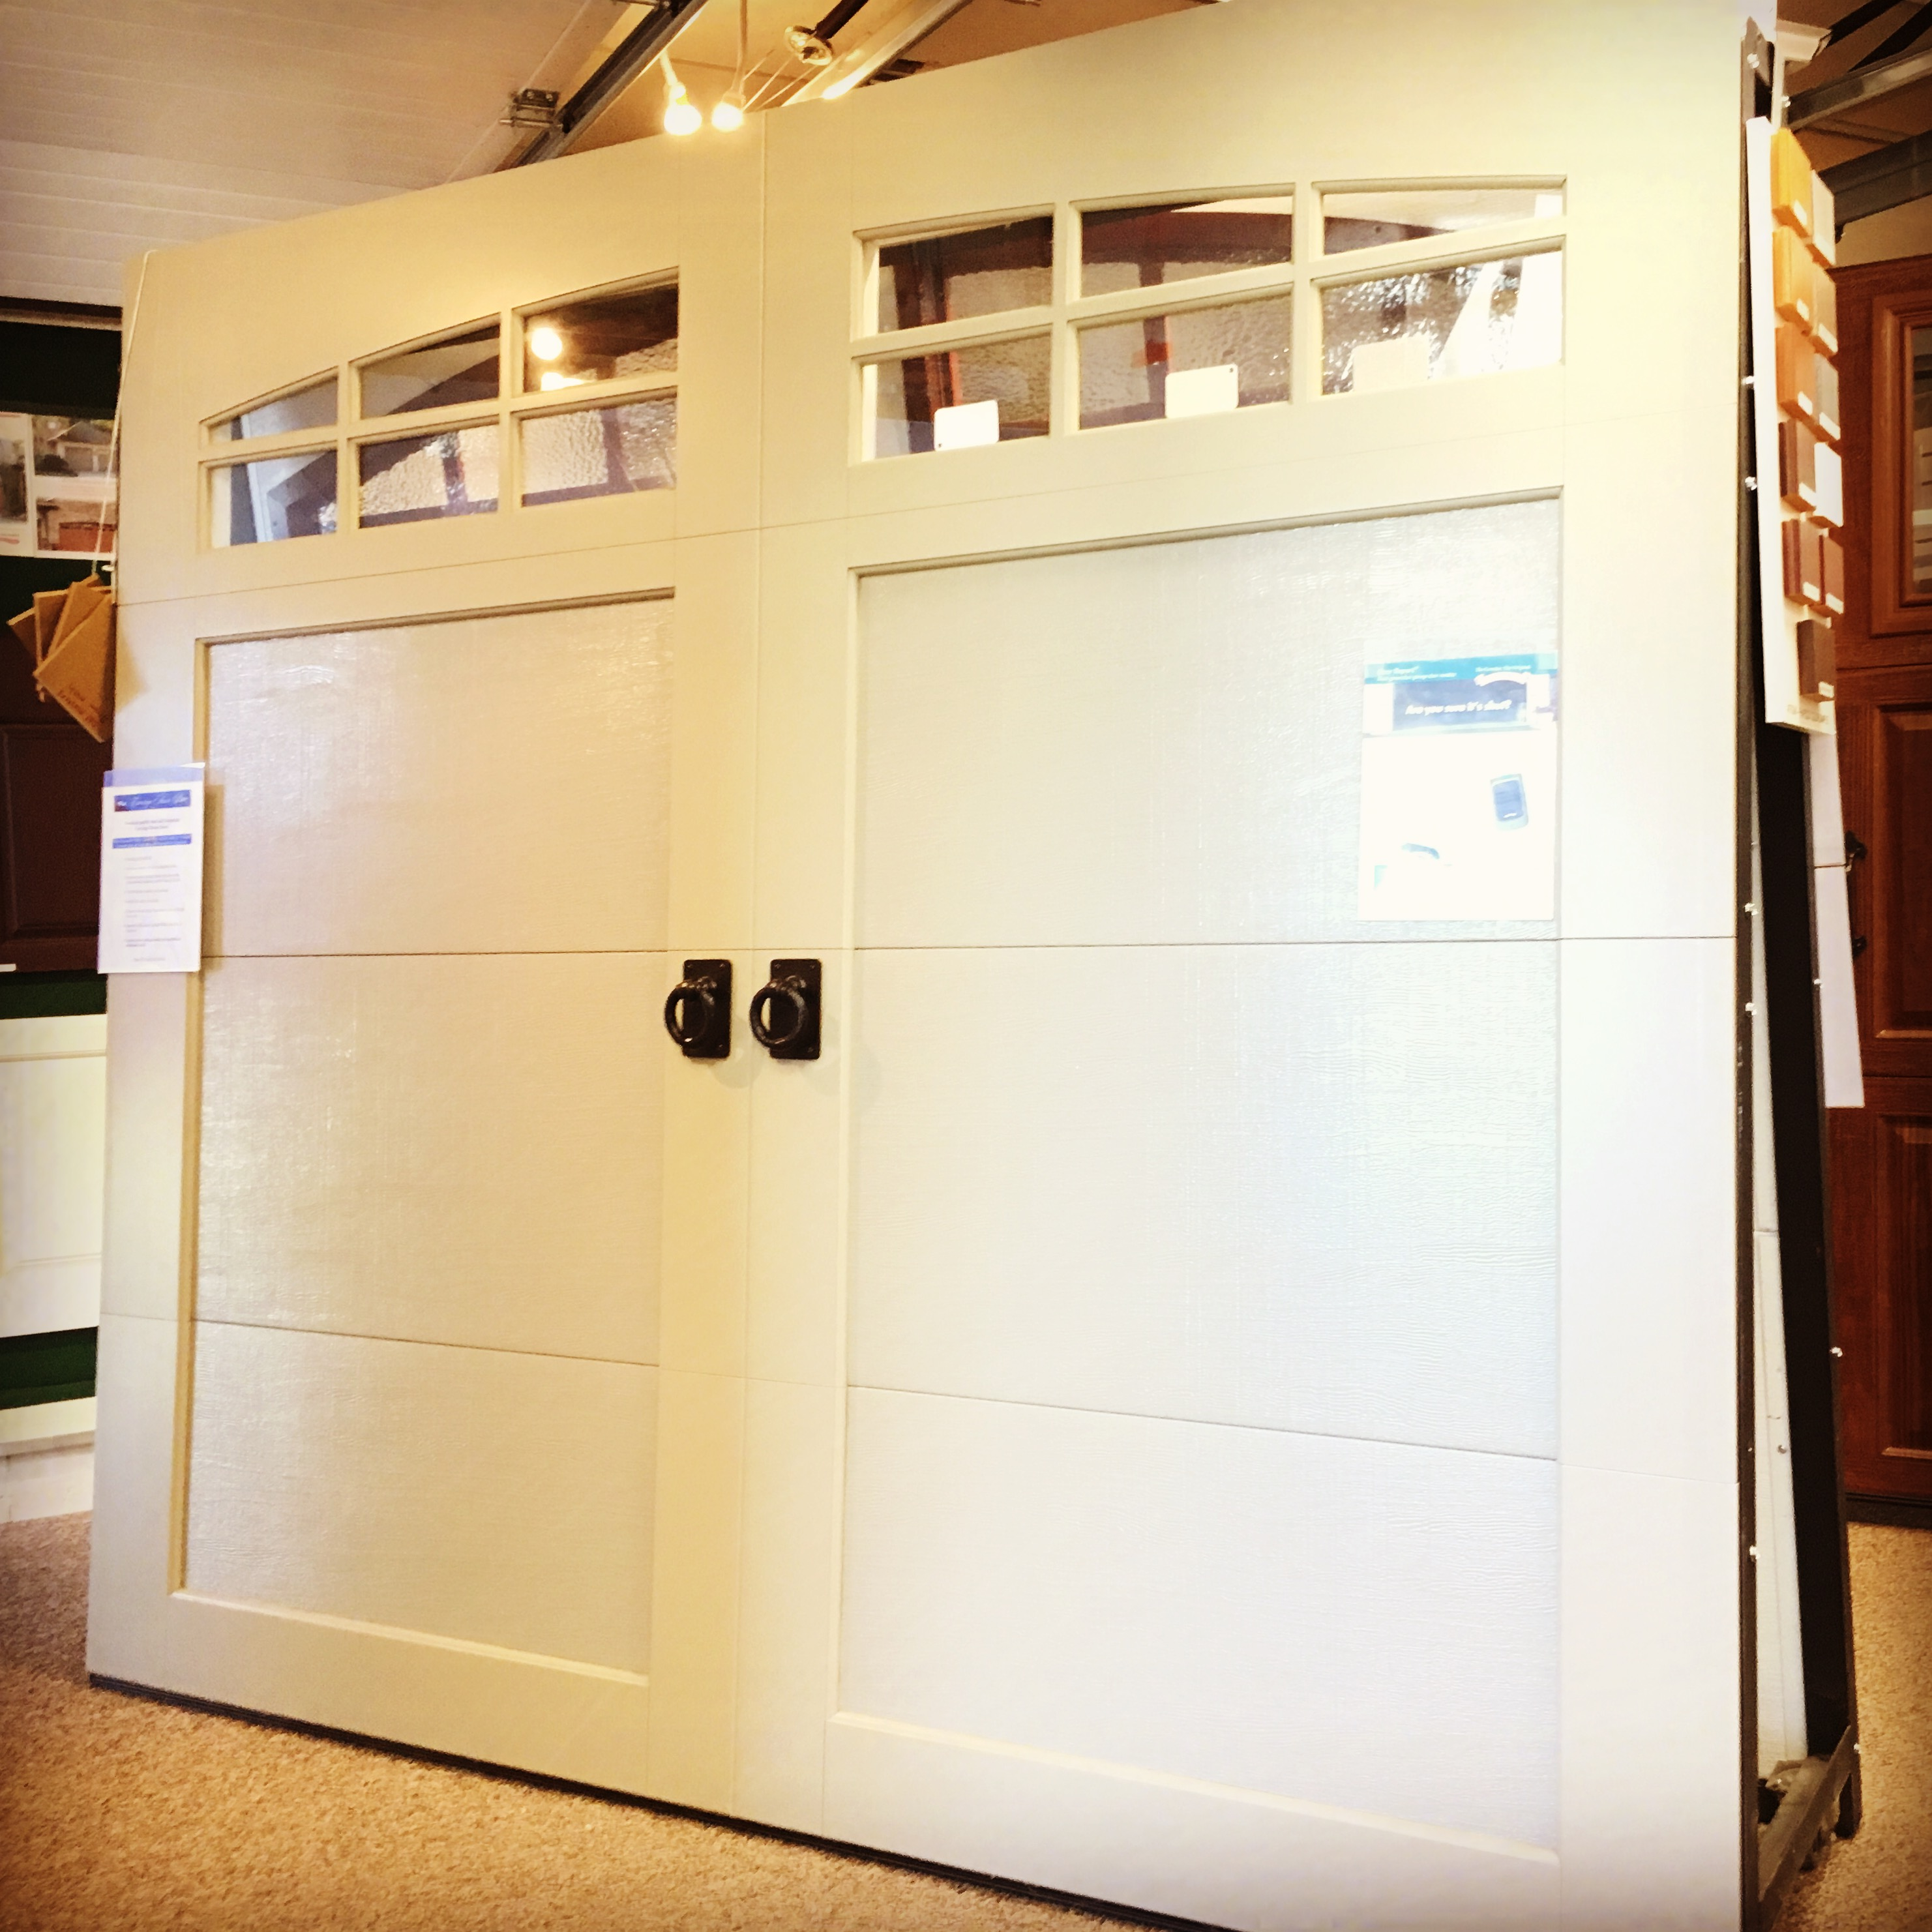 all of these fanciful designs come in different sizes to accommodate different door dimensions and widths of their center stiles in addition to handles and - Garage Door Decorative Hardware